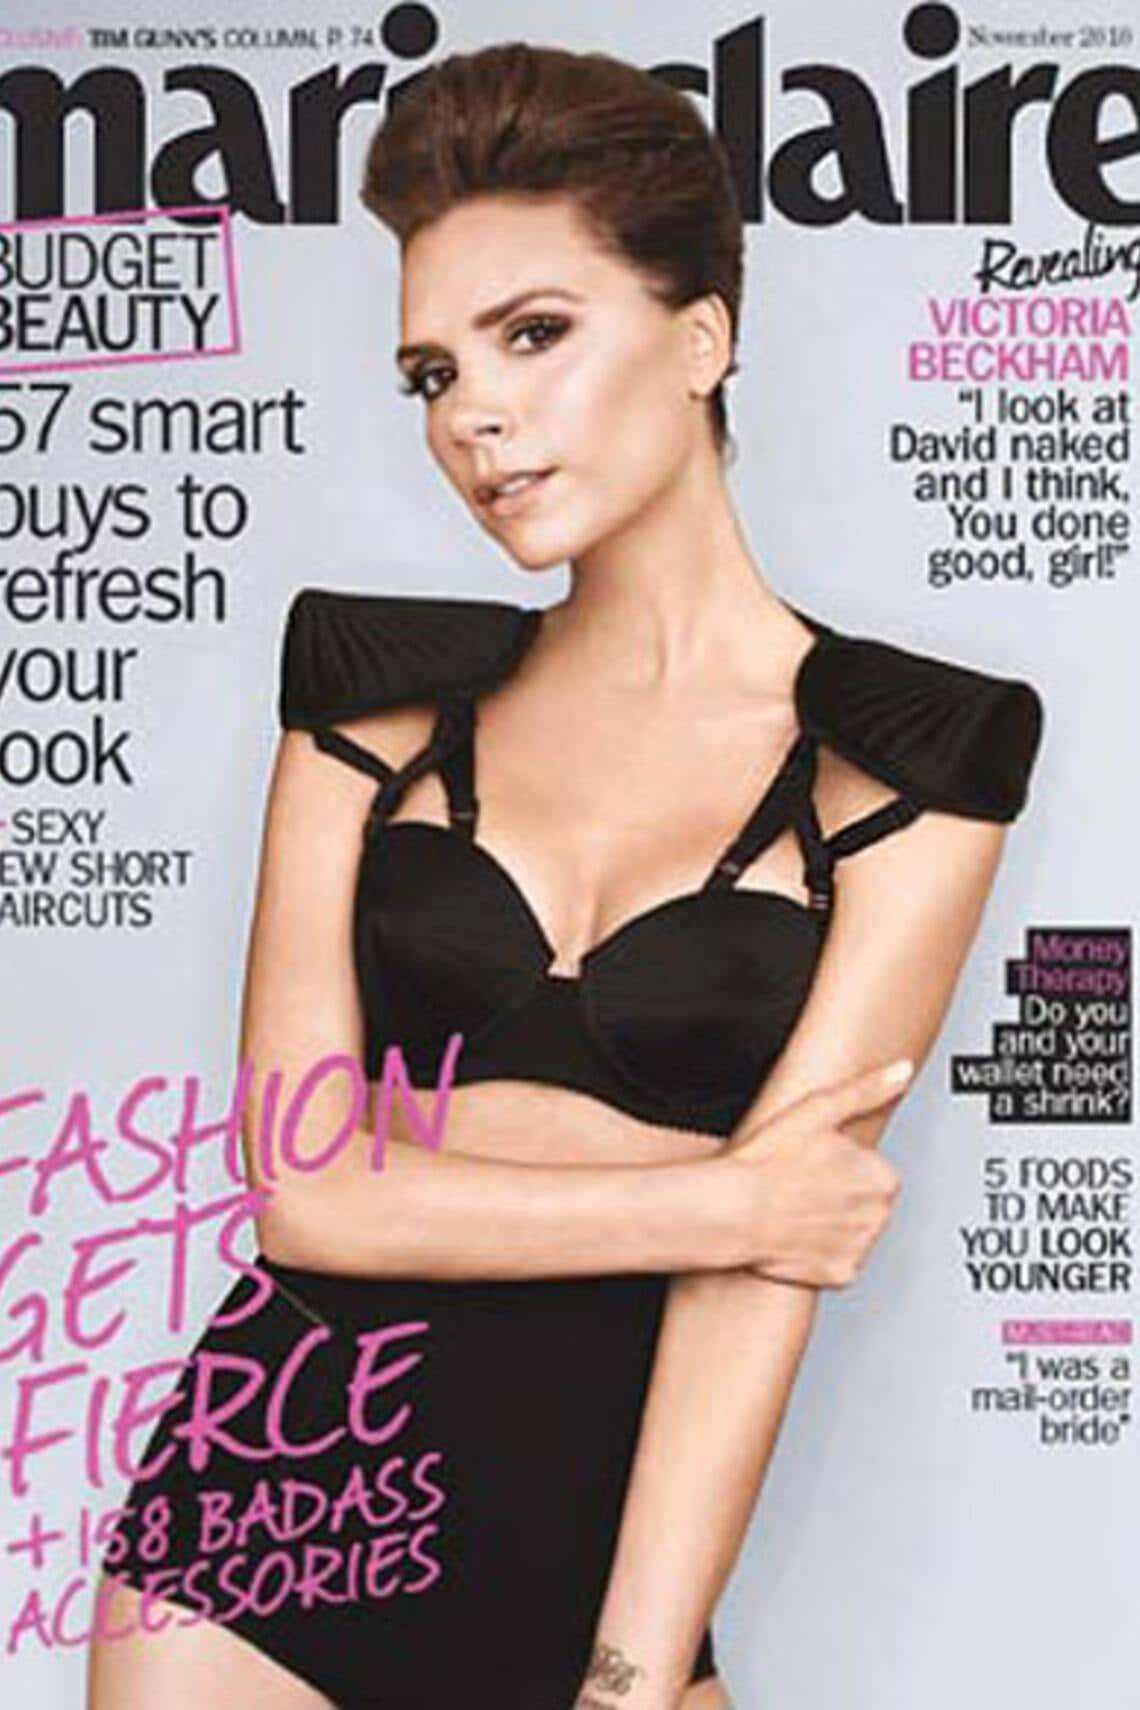 Victoria Beckham Cover Marie Claire 2010